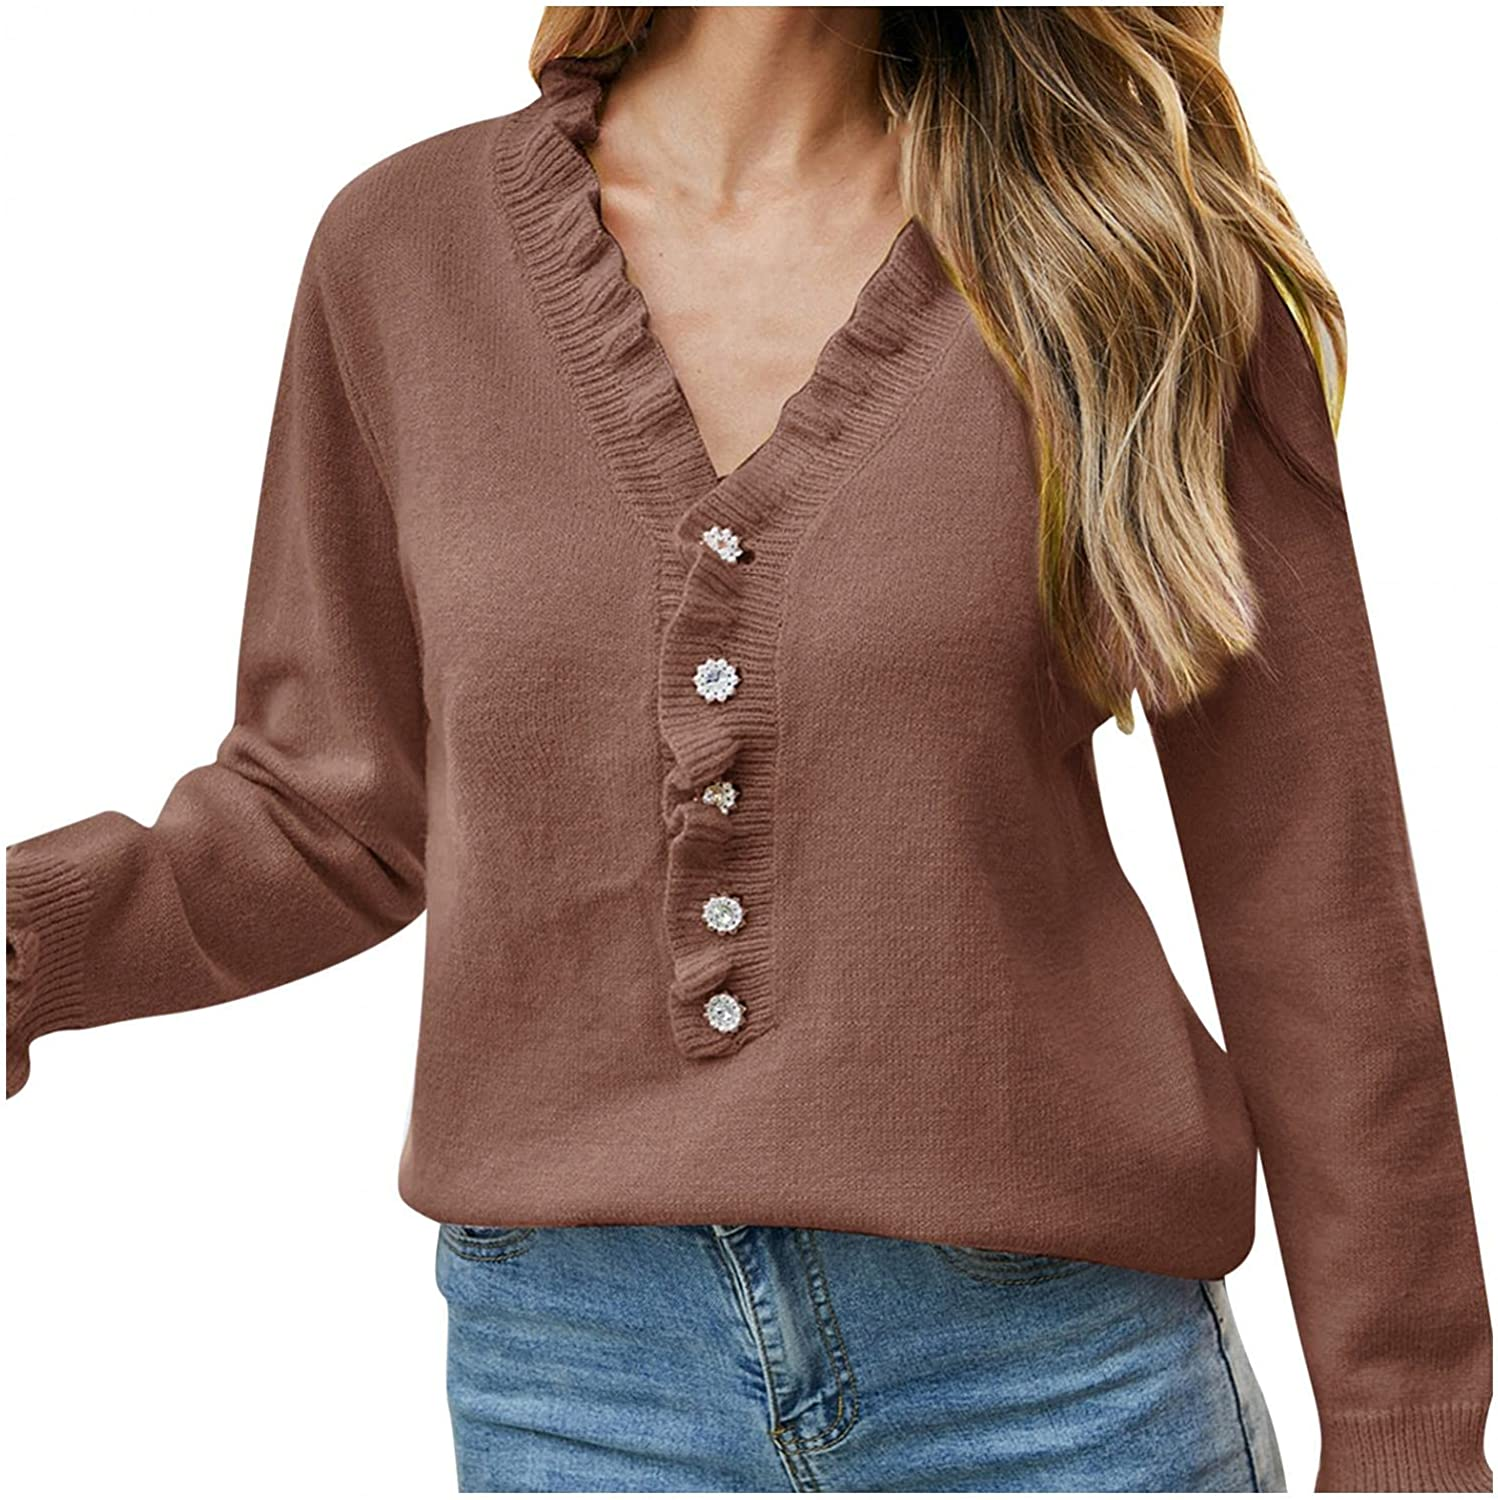 Changeshopping Women's Knit Sweater Button Loose Short Floral Print V-Neck Long Sleeve Sweater